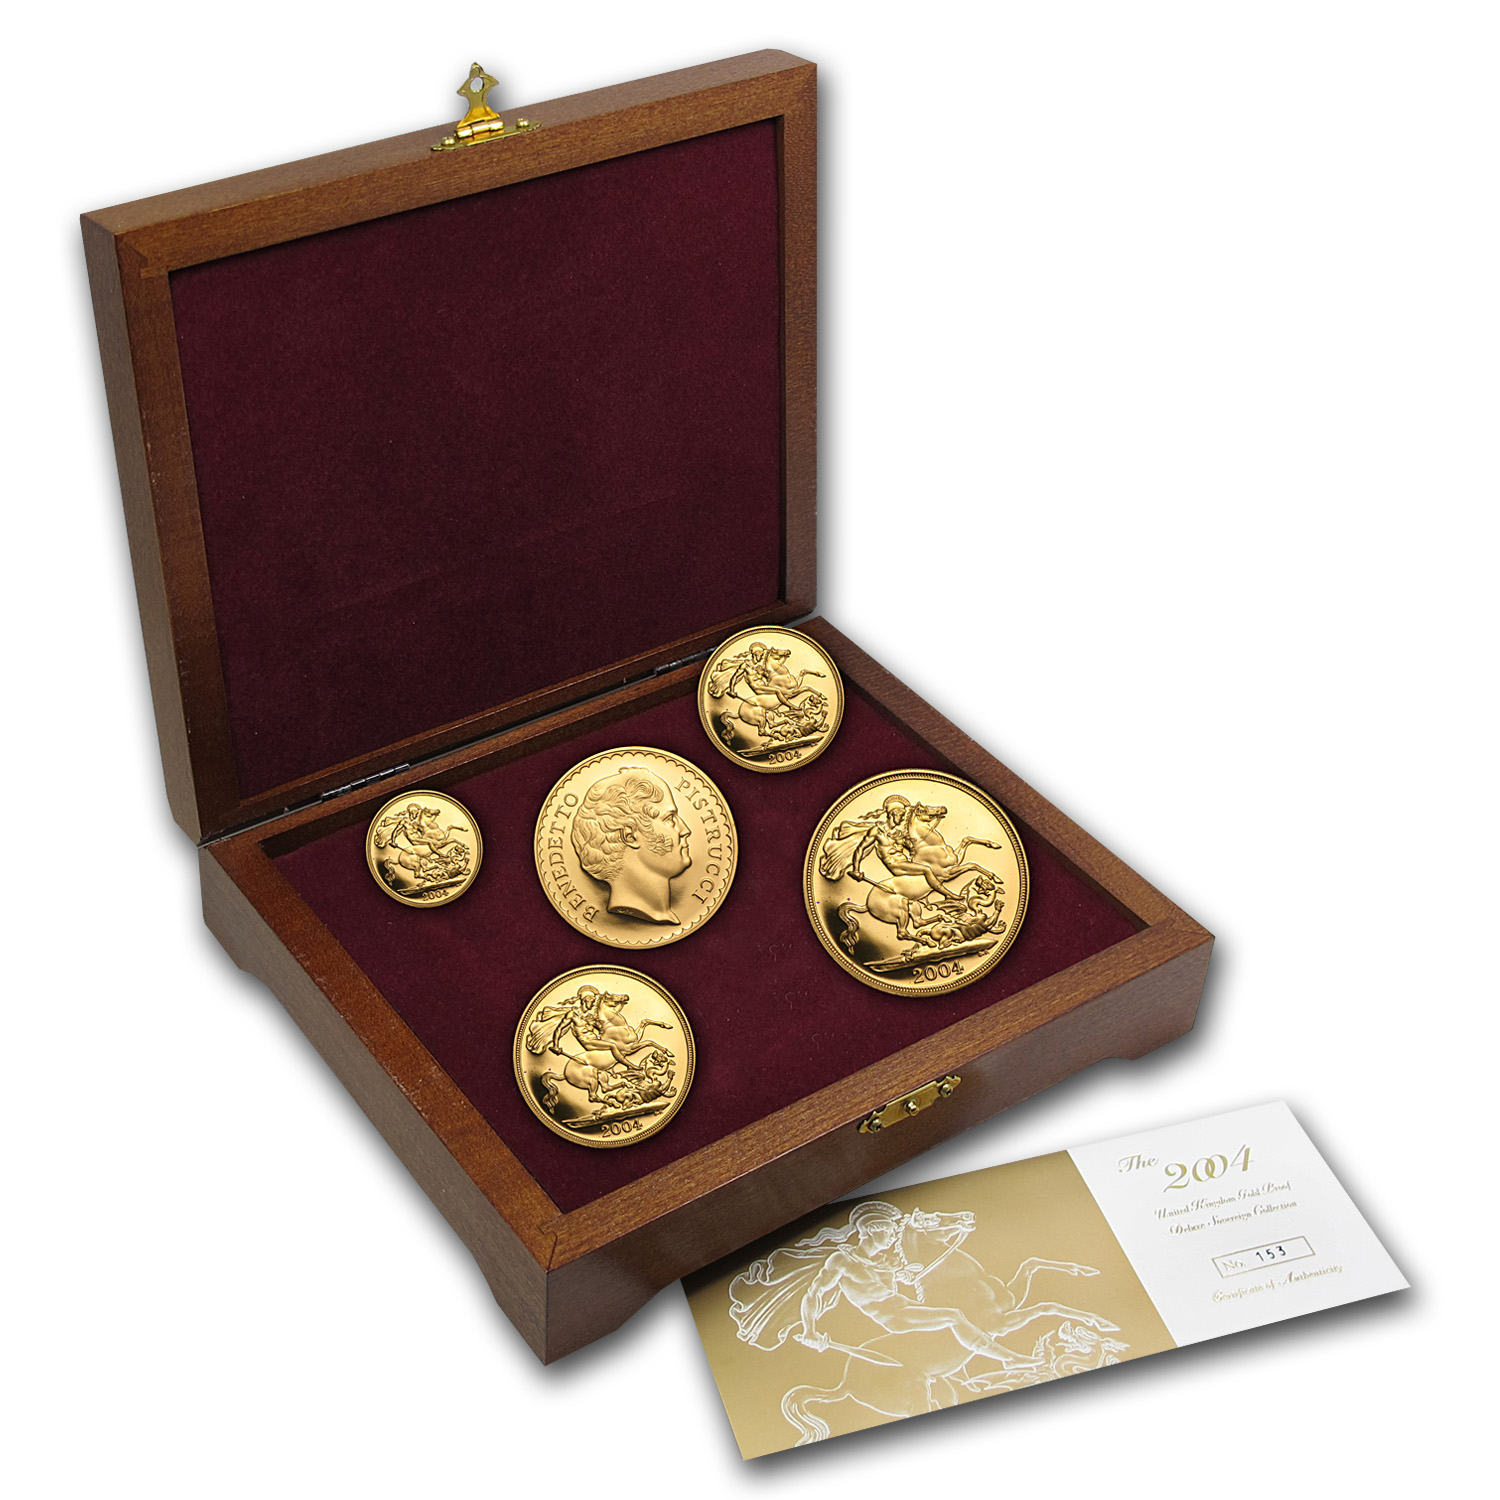 2004 Great Britain 5-Coin Gold Sovereign Proof Set